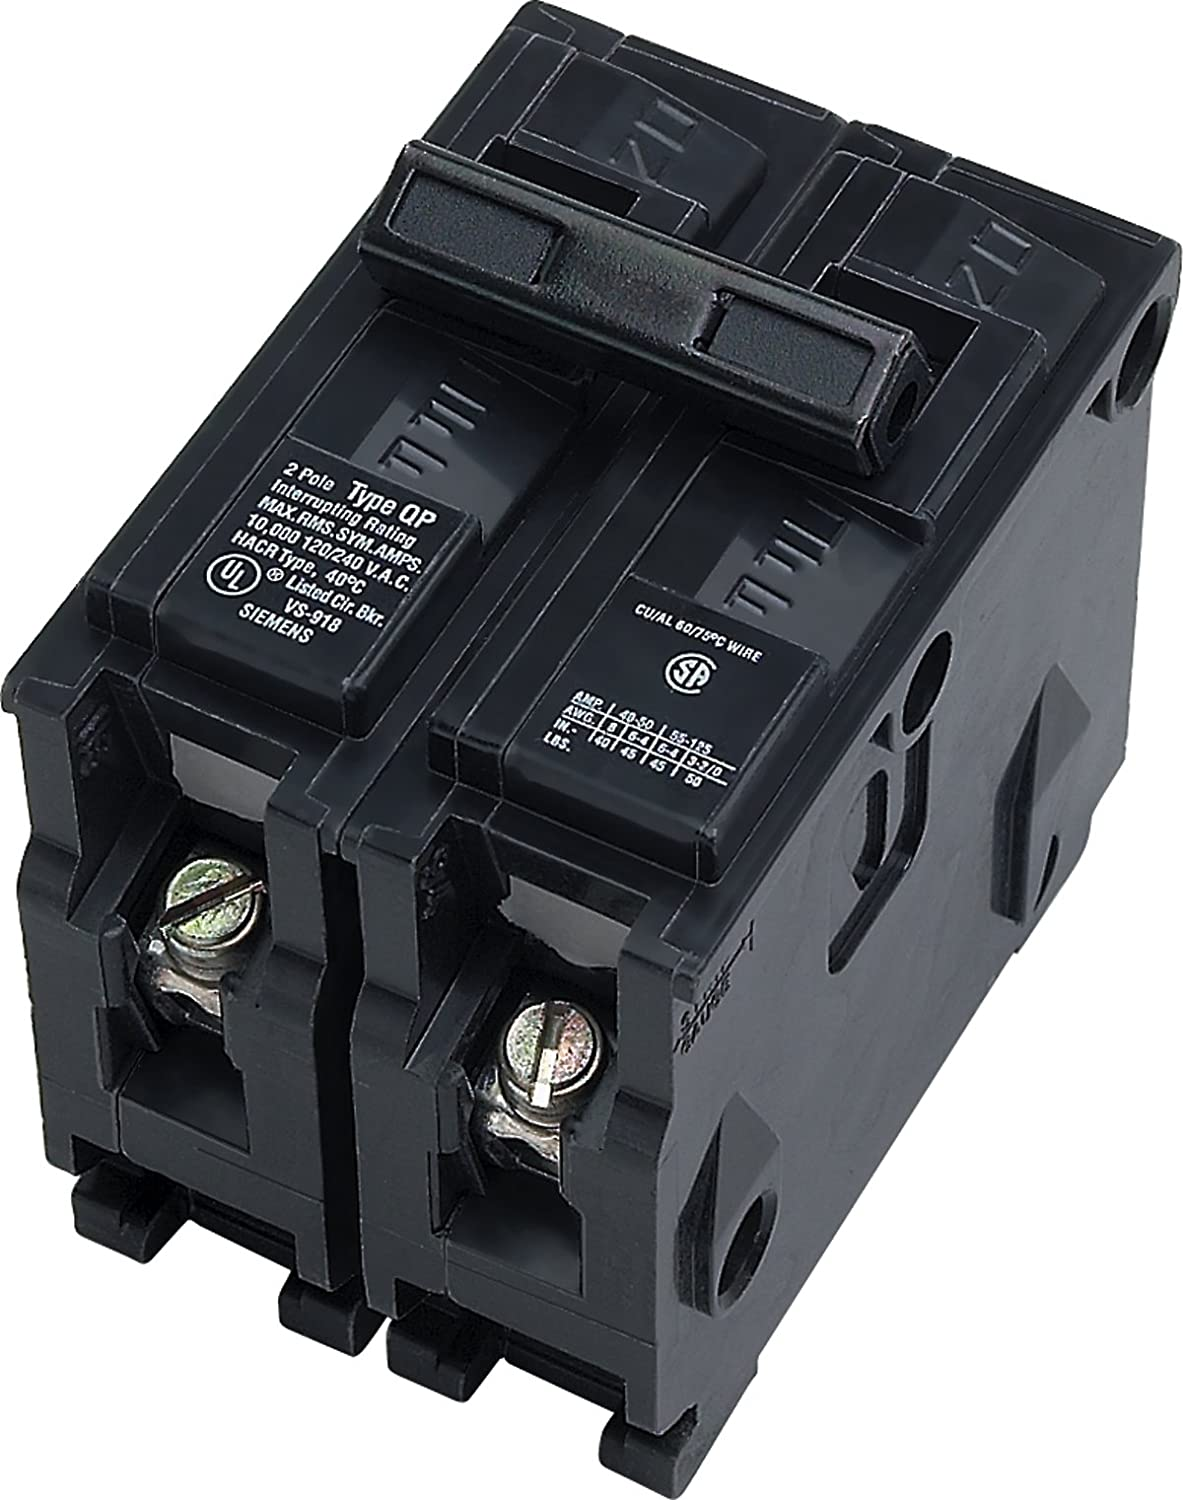 Q280 80-Amp Double Pole Type QP Circuit Breaker